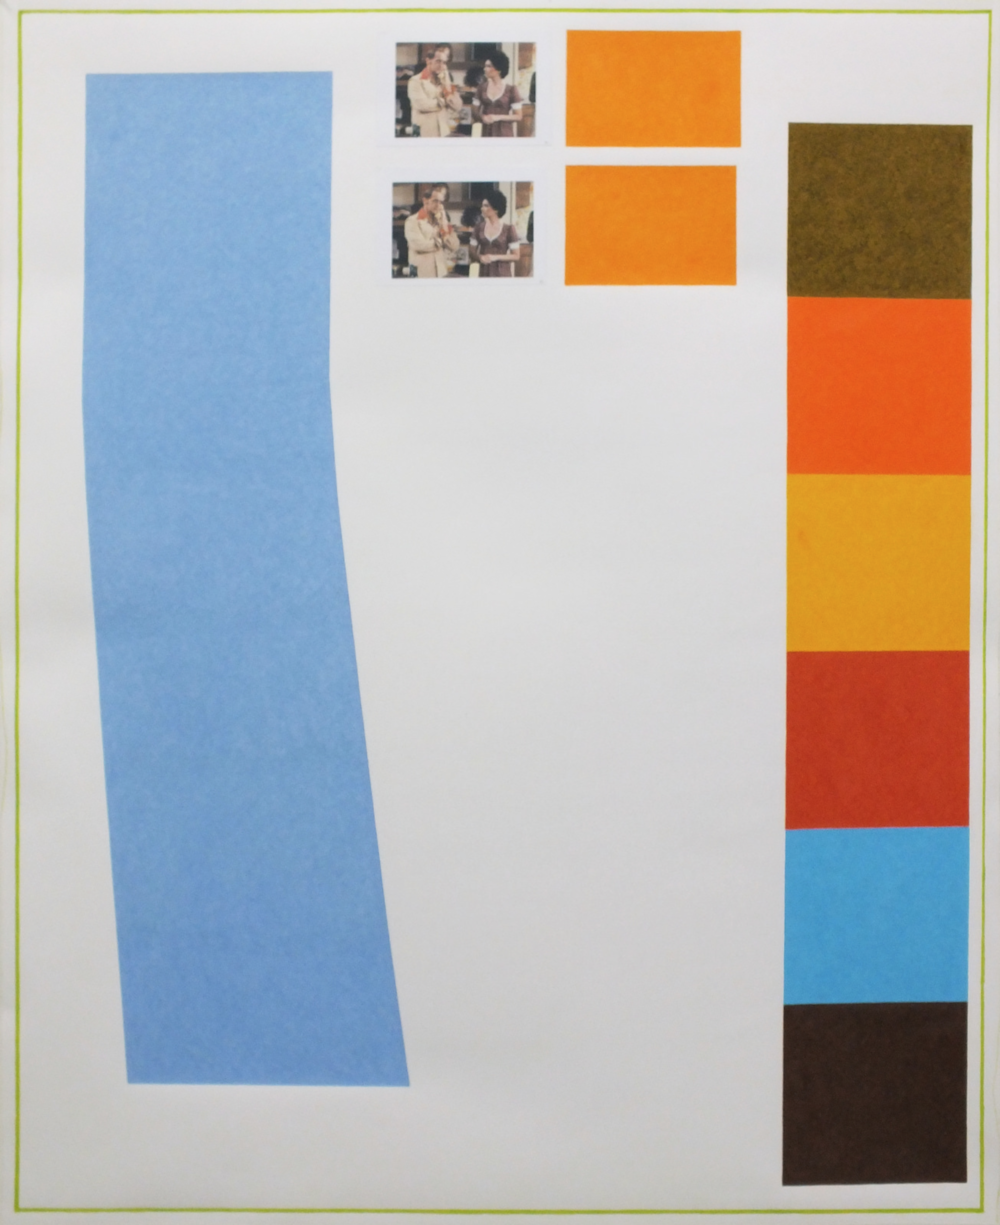 David X. Levine  Bob Newhart,  2014 colored pencil, collage, graphite on paper 48h x 38w in.